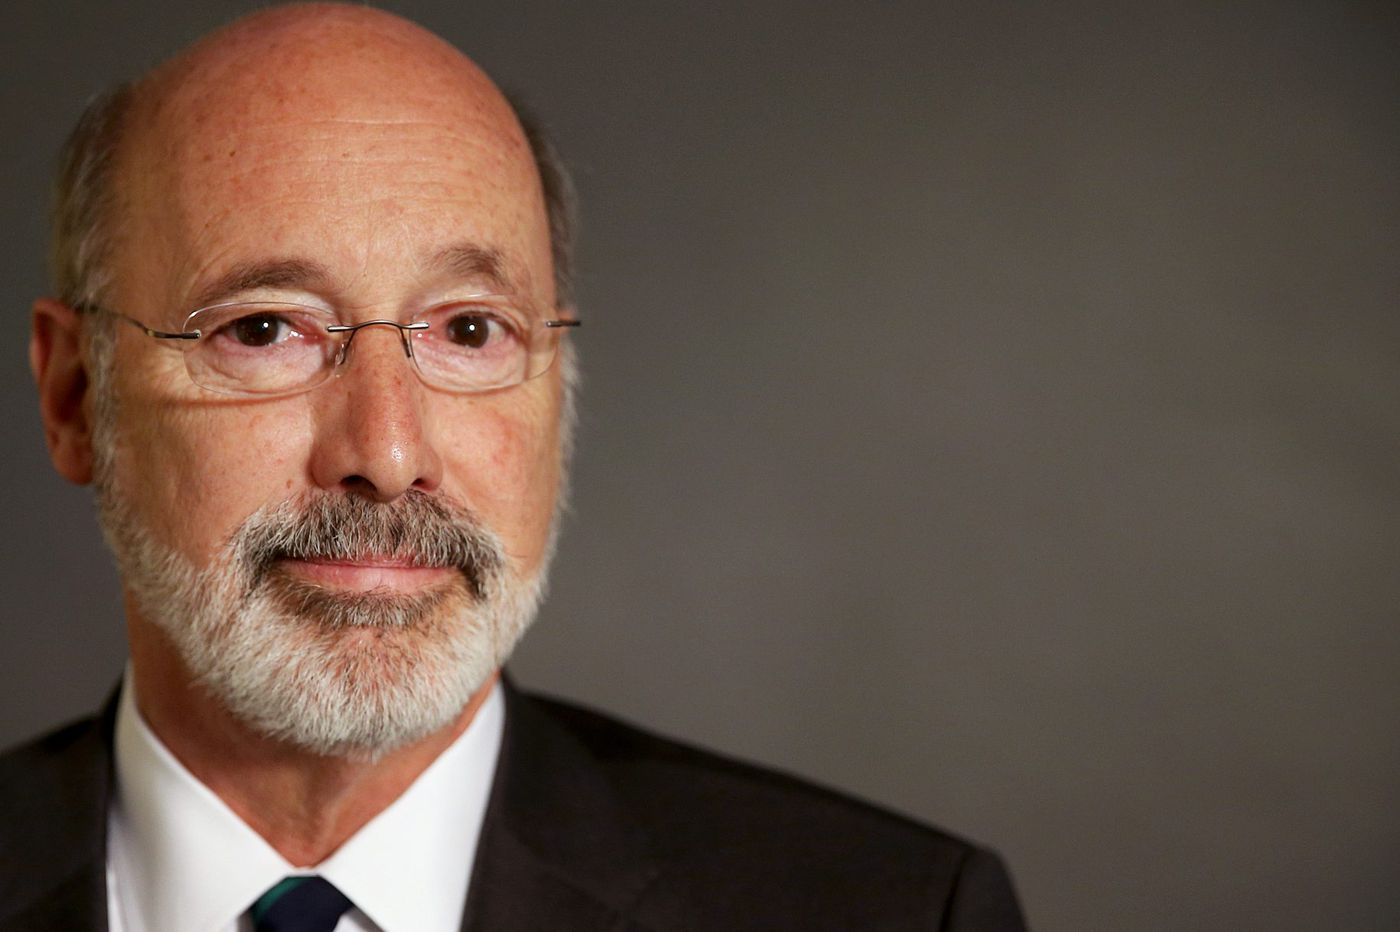 What will Gov. Wolf's second term look like? | John Baer